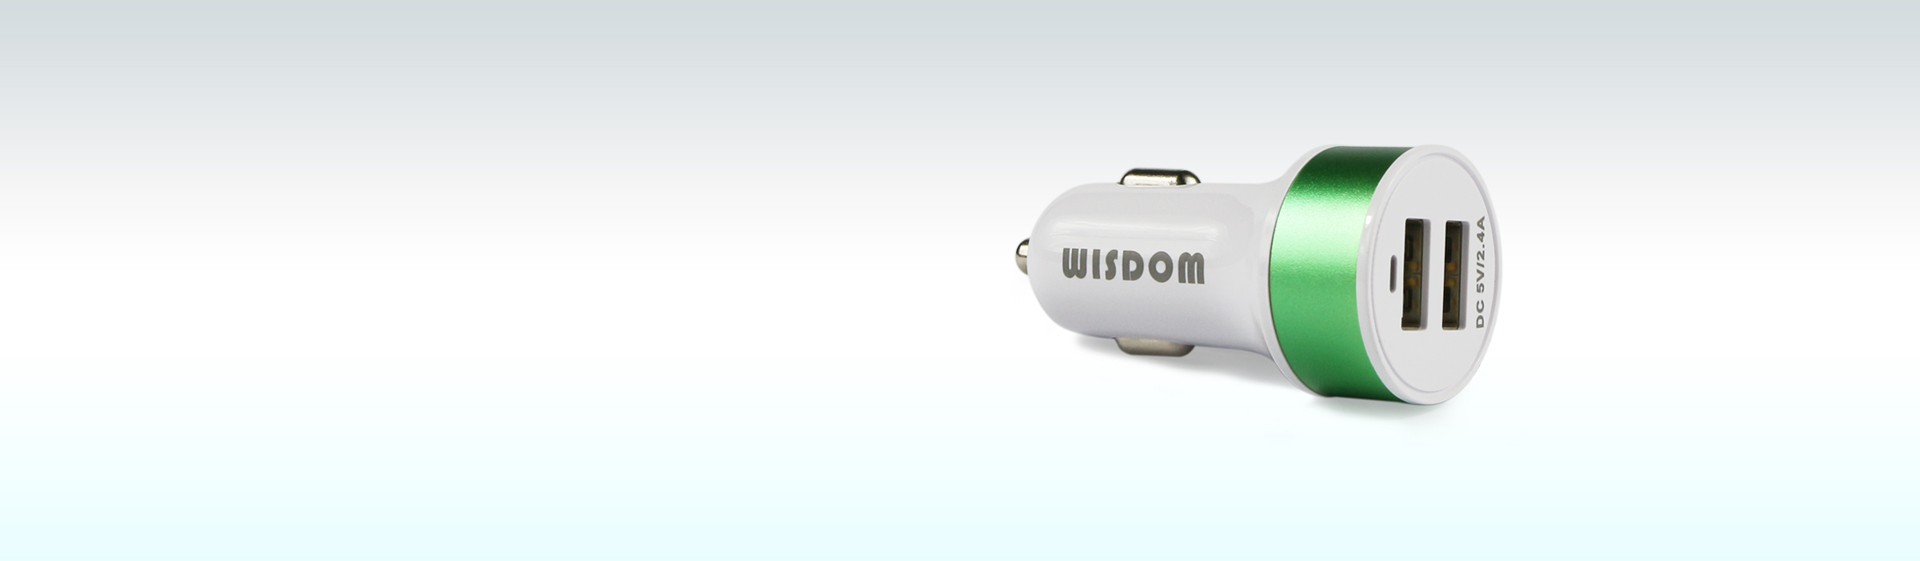 WISDOM Multi-purpose Lamp Accessories: Vehicle Power Adaptor